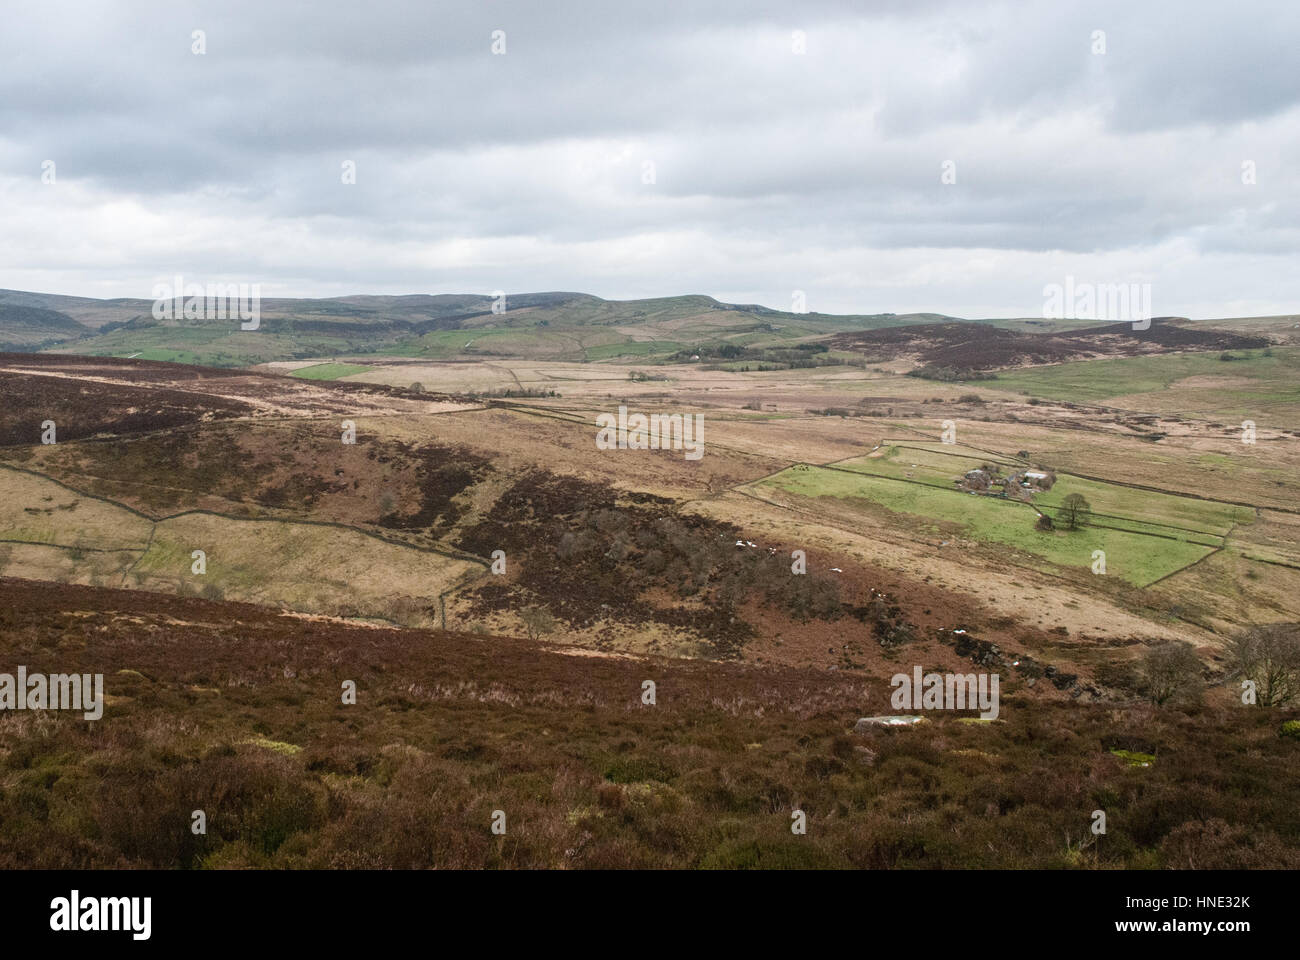 A view across the Staffordshire Moorlands on a clear day - Stock Image